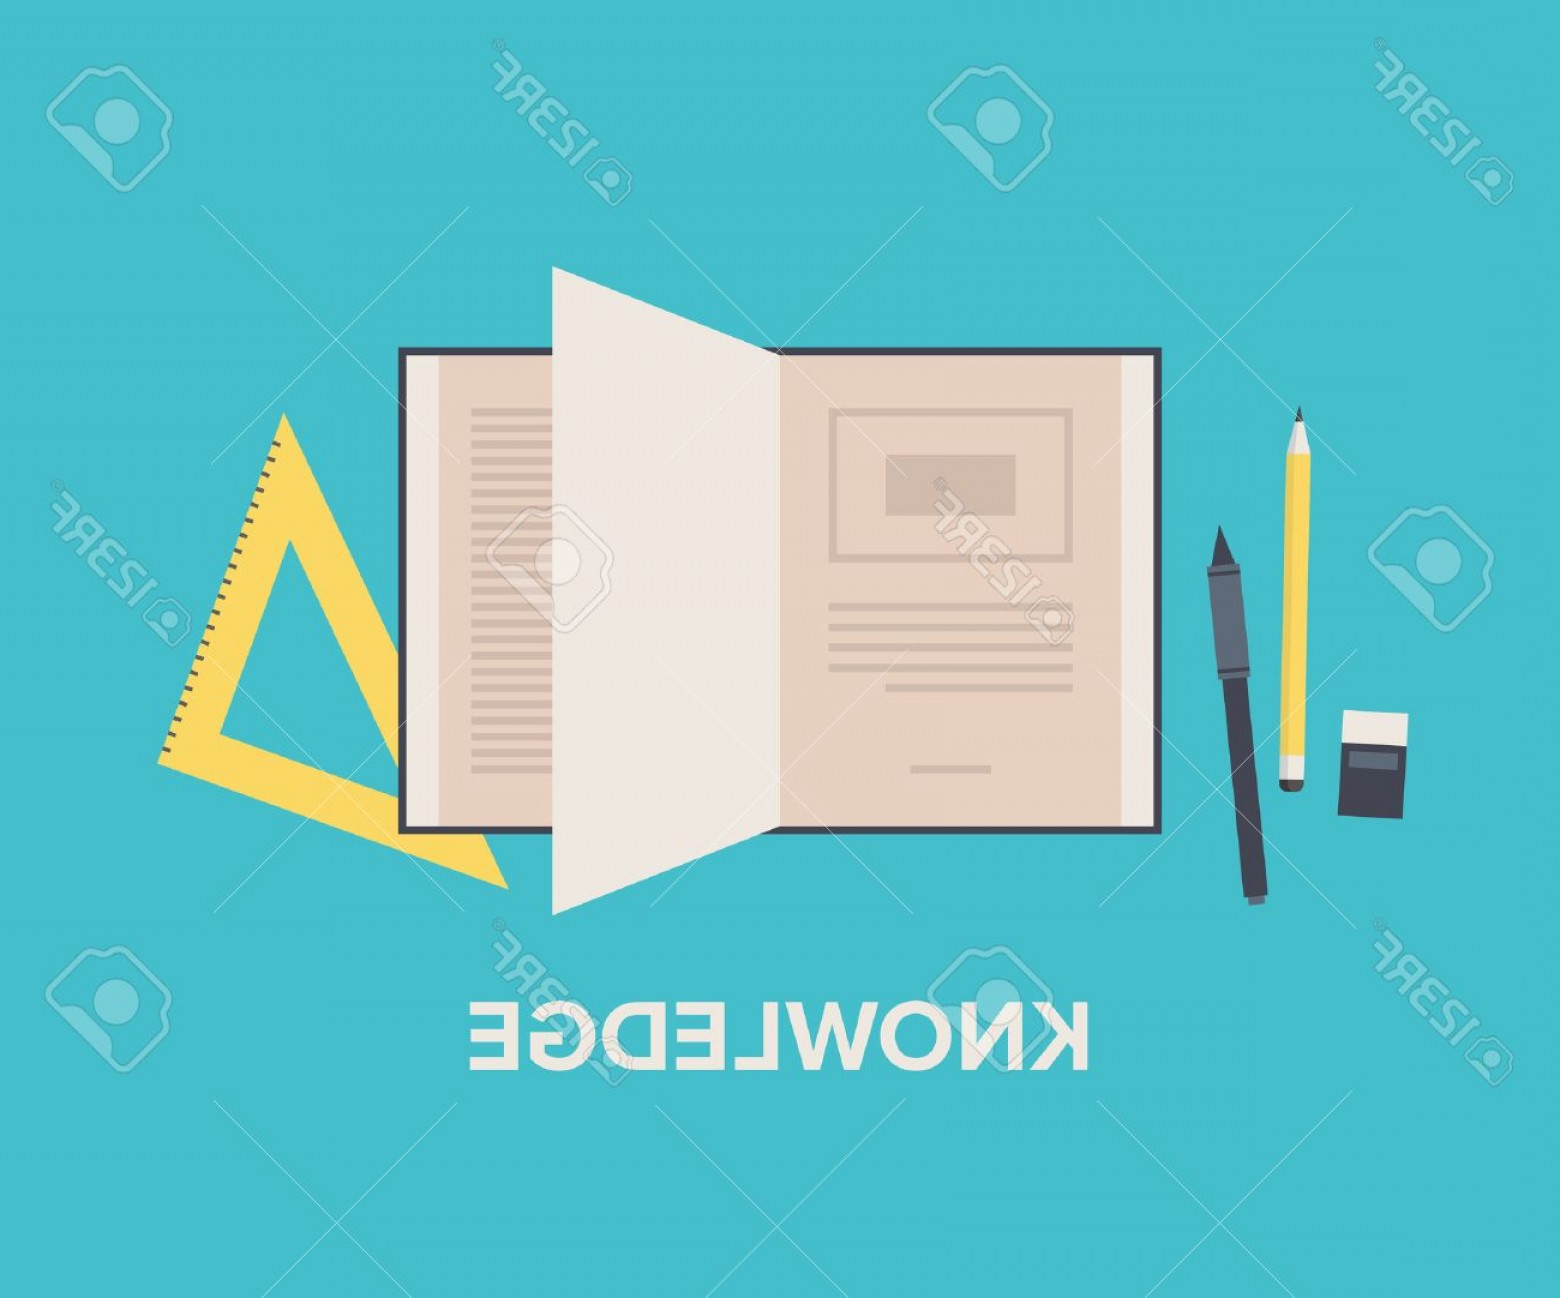 Open Book Vector Flat: Photostock Vector Knowledge And Education Concept With Open Book For Reading And Learning Maths Equipment And Writing